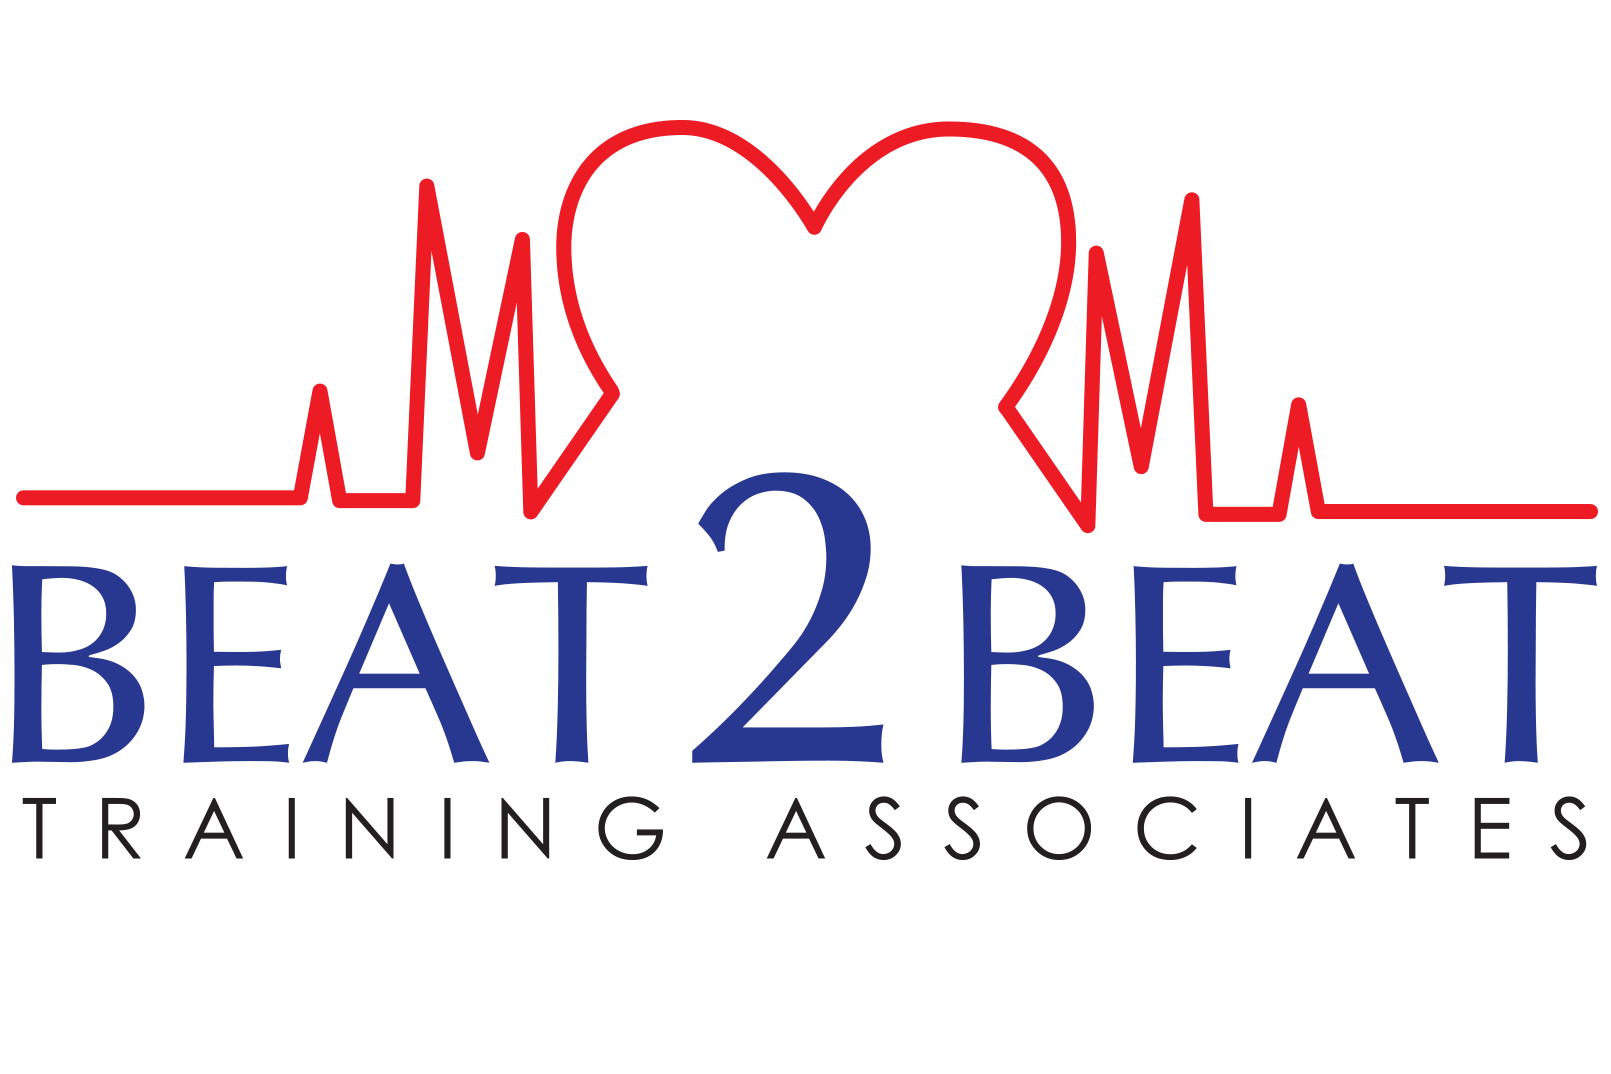 Beat 2 Beat Training Associates